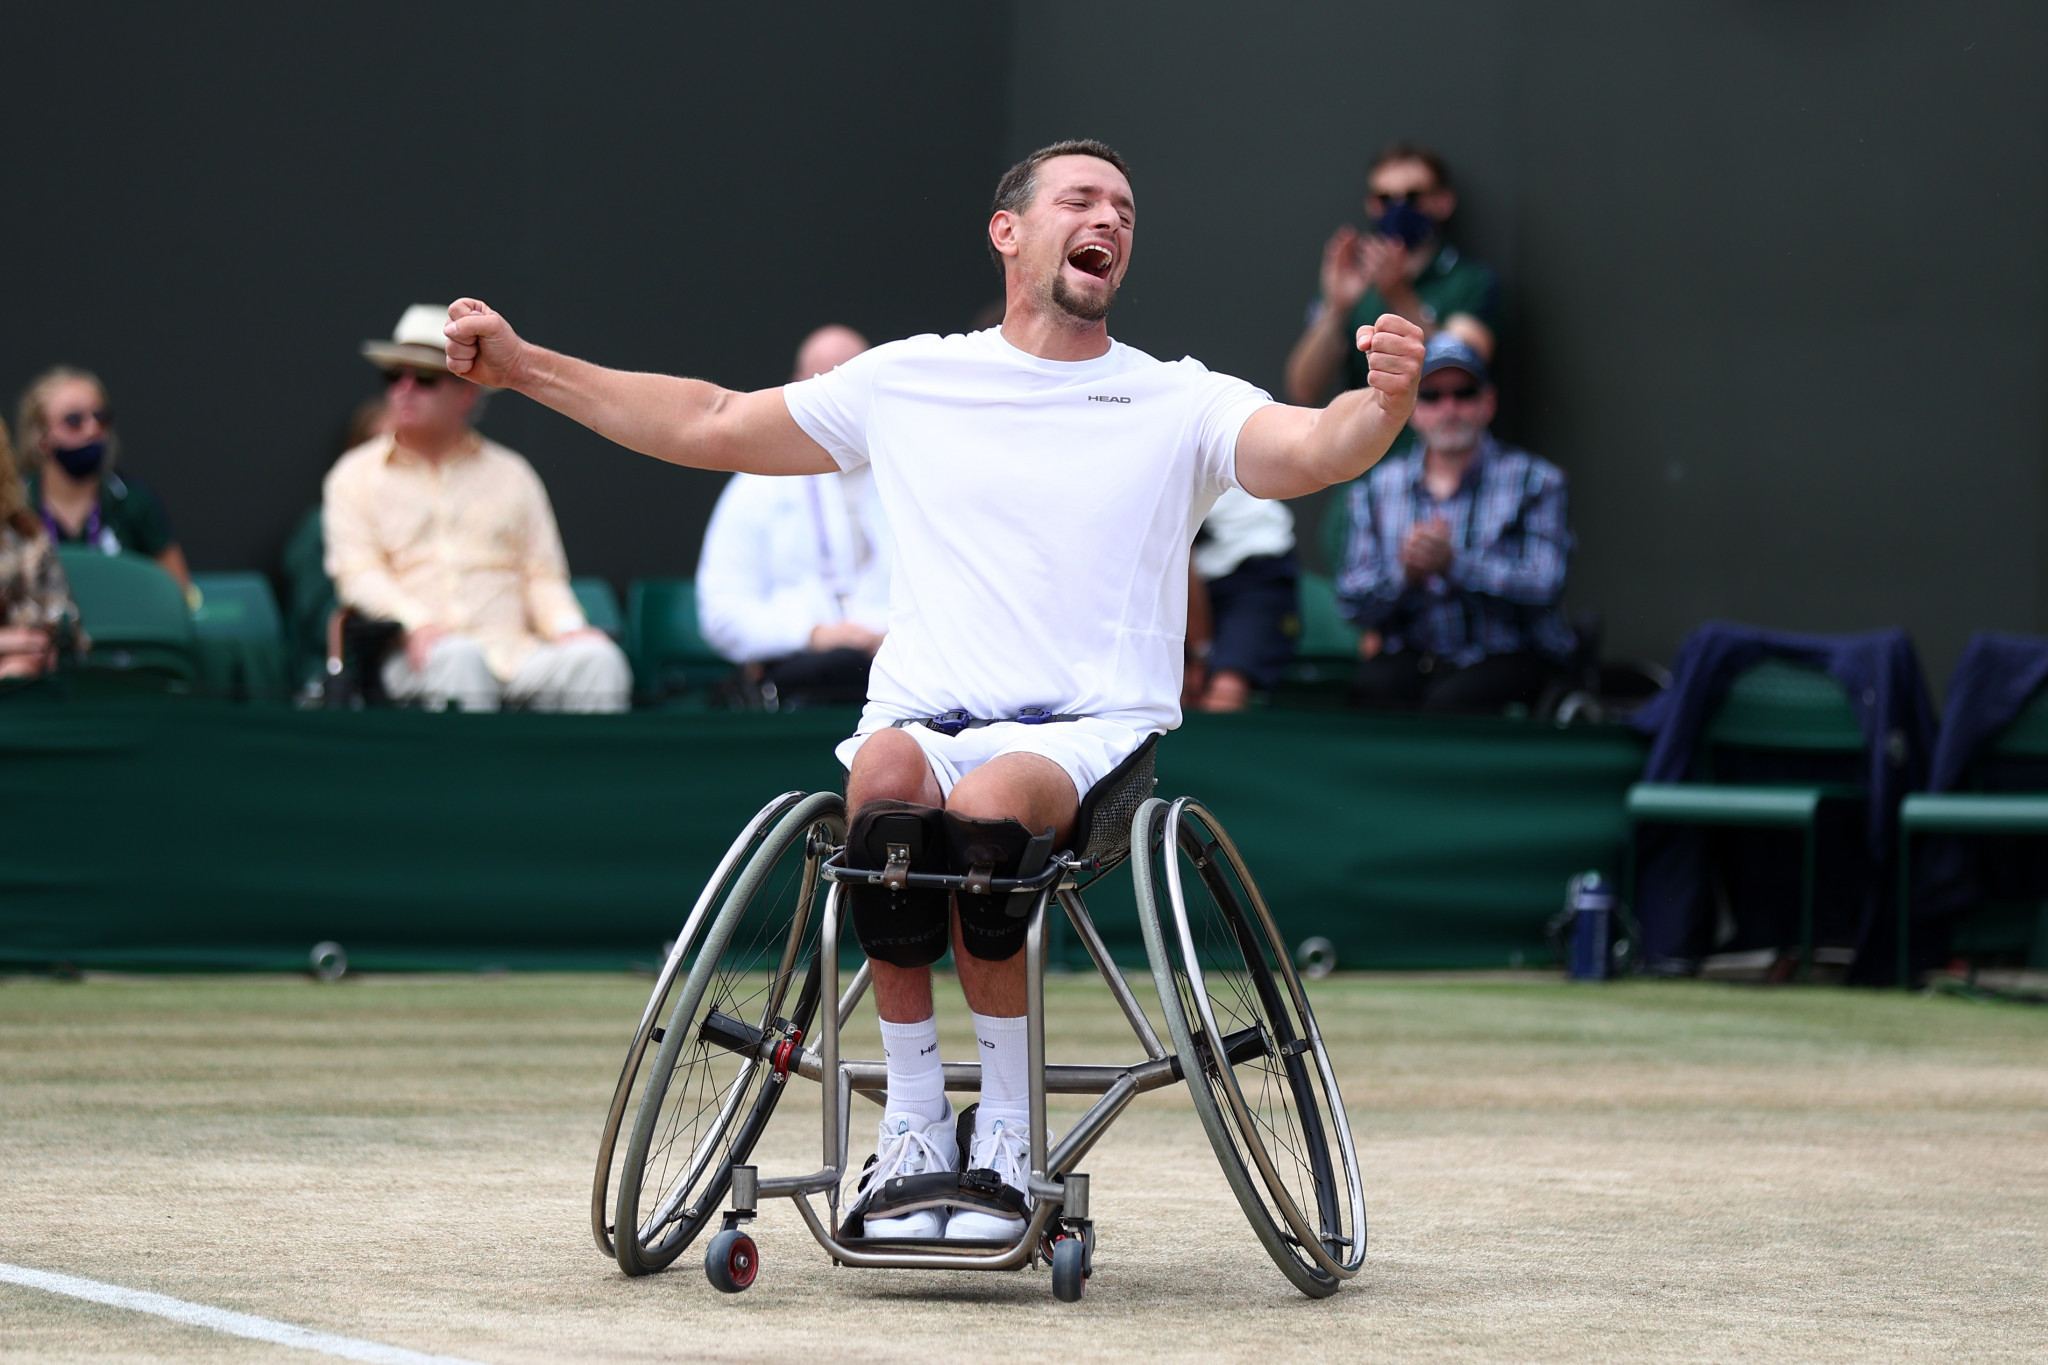 Gerard and De Groot win wheelchair singles titles as Wimbledon comes to a close